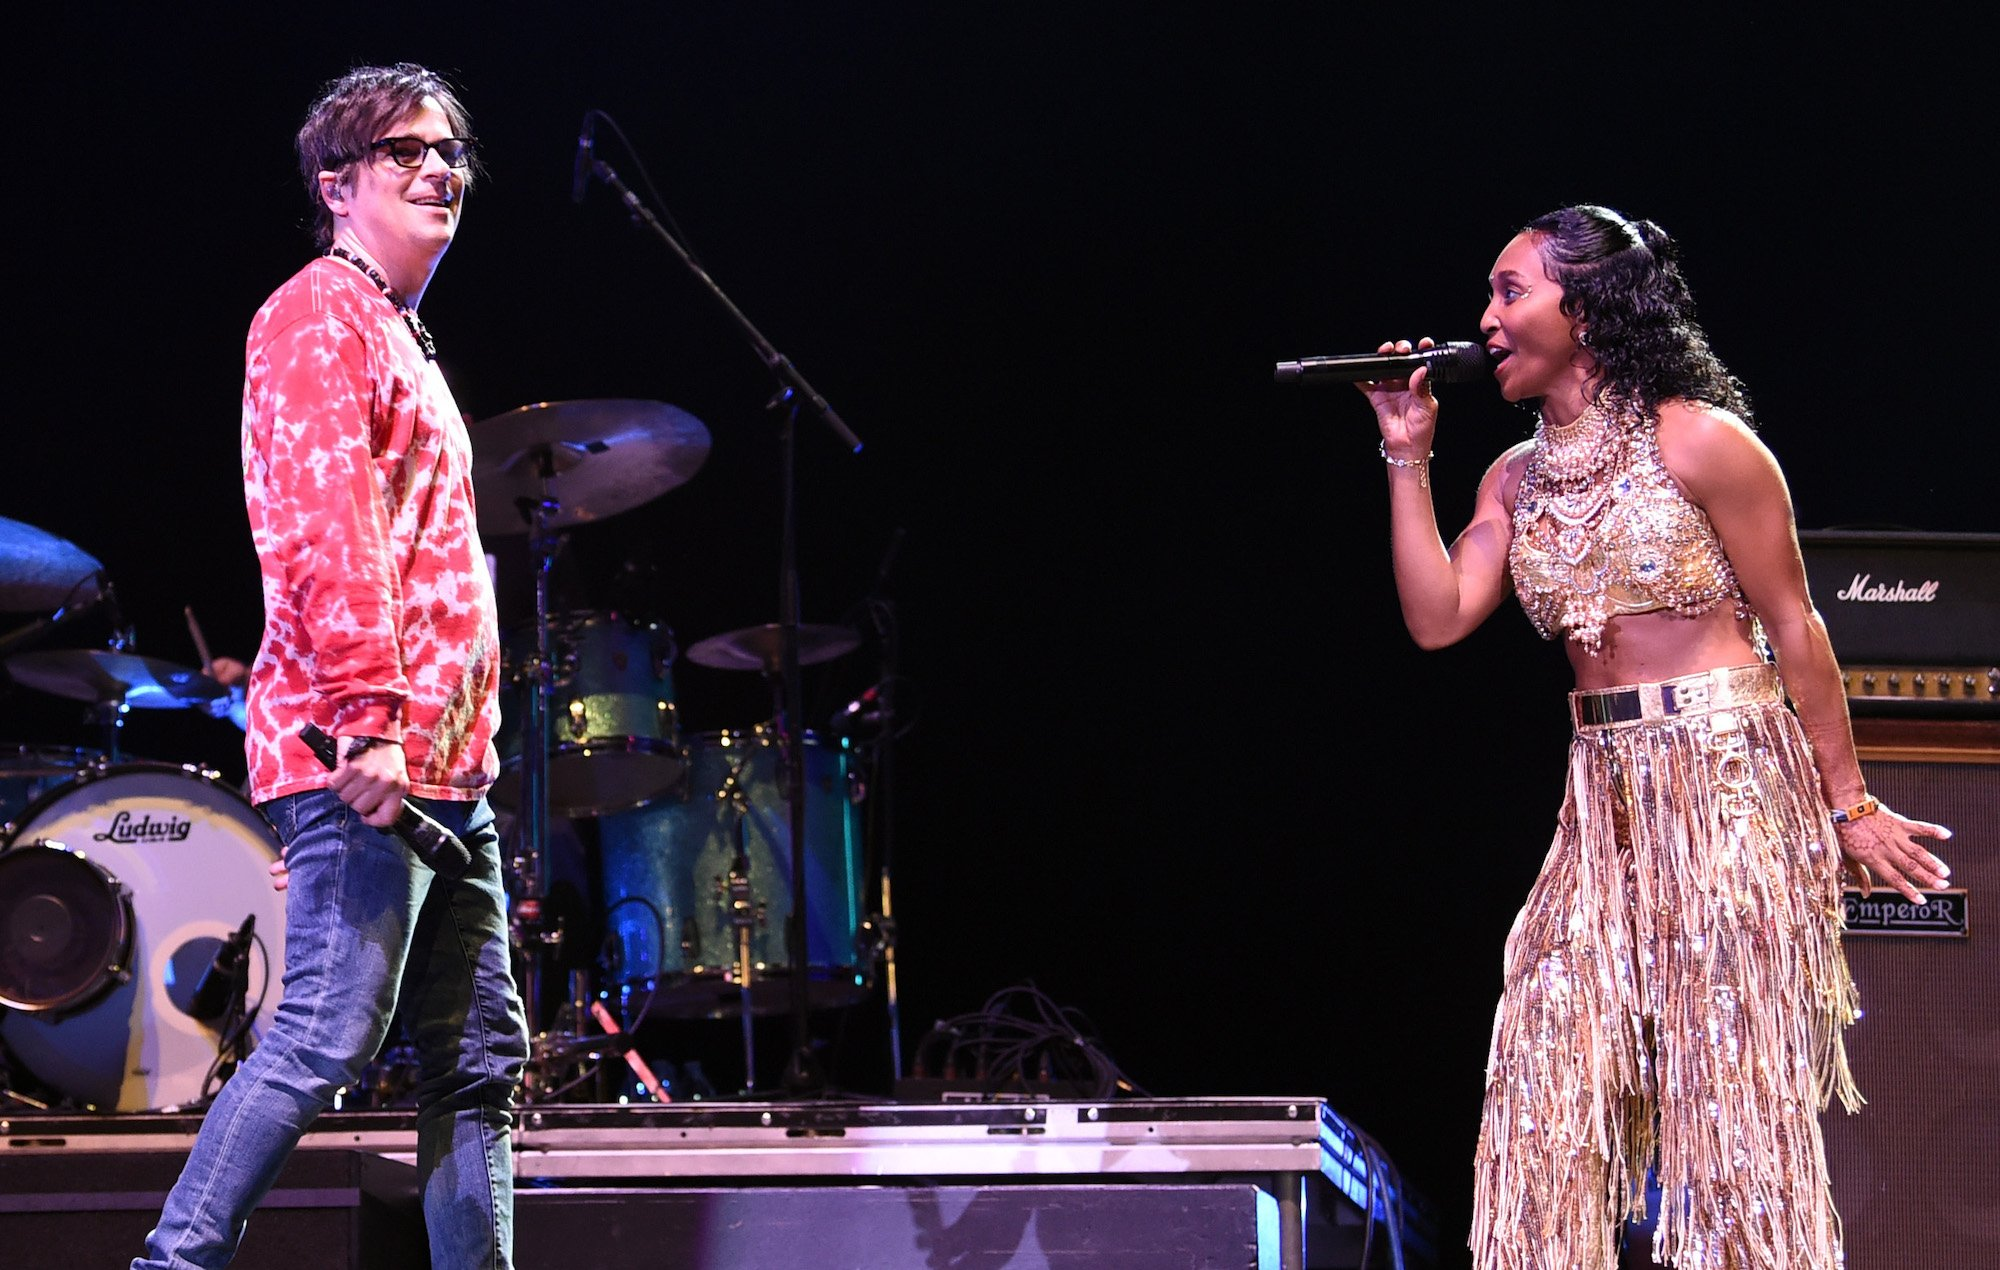 Watch @Weezer cover 'No Scrubs' with @OfficialTLC's Chilli at #Coachella 2019 https://t.co/2jeKbNBUhV https://t.co/XW4B19zeQa